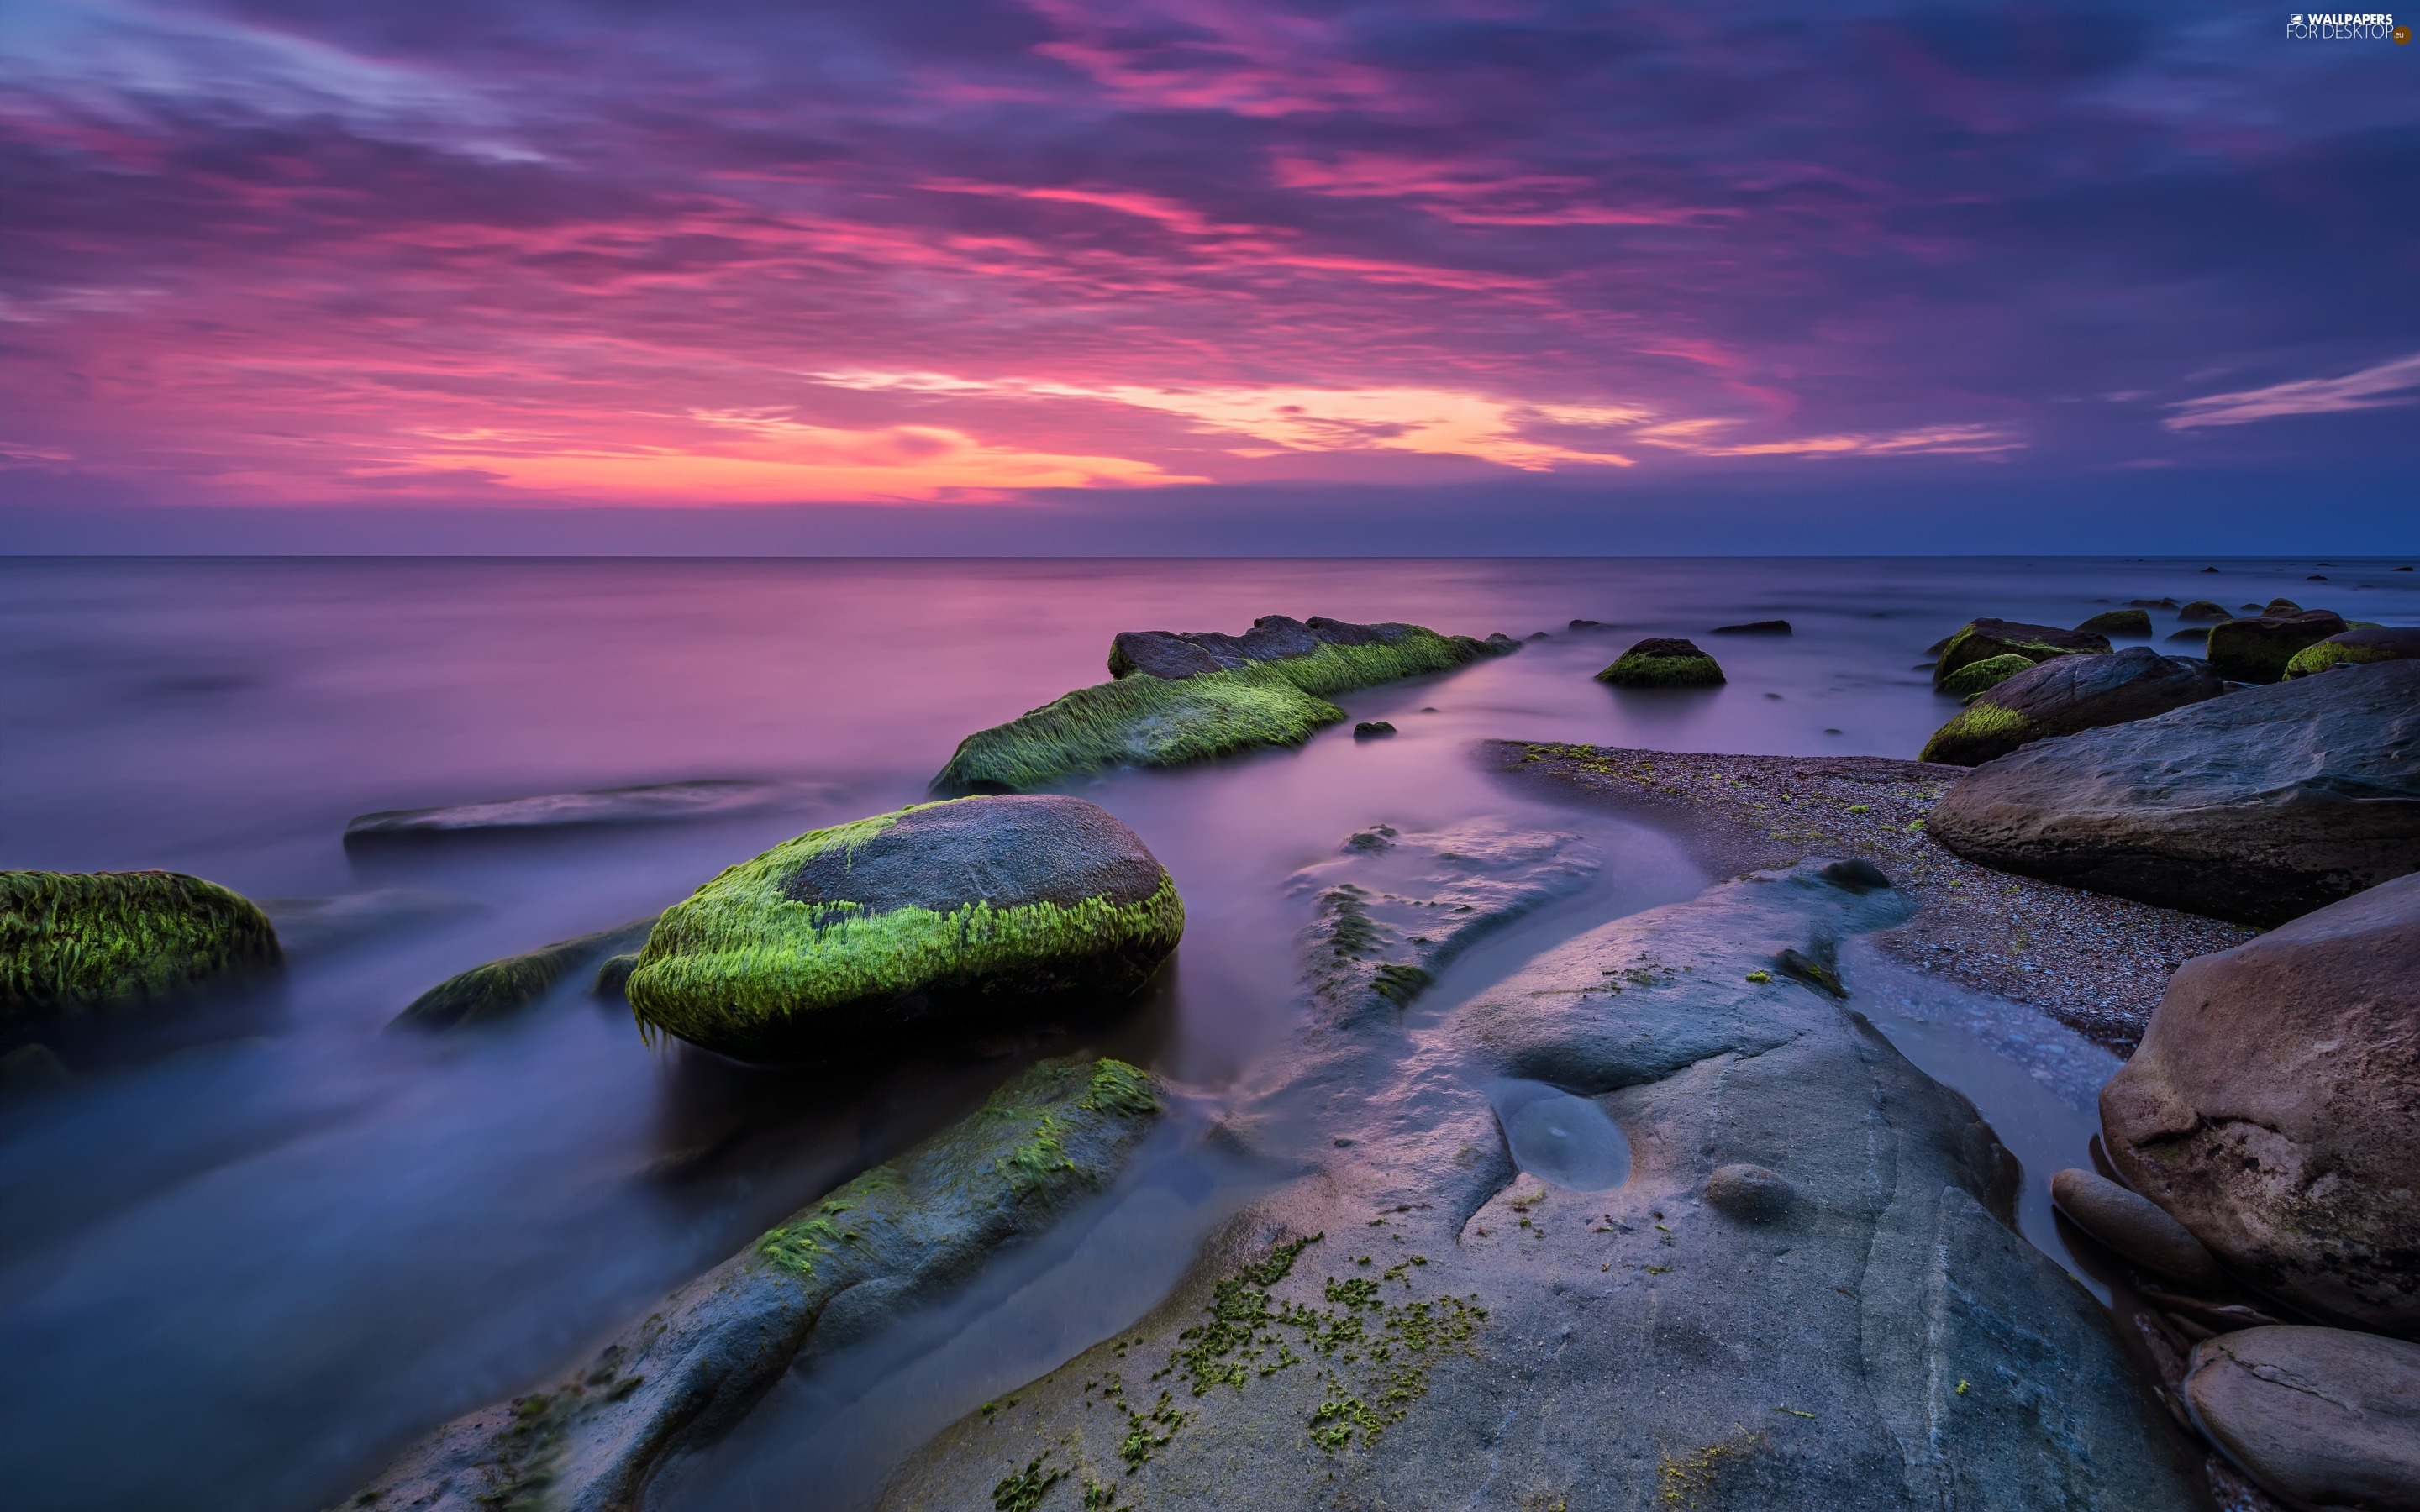 sea, Stones, Great Sunsets, mossy